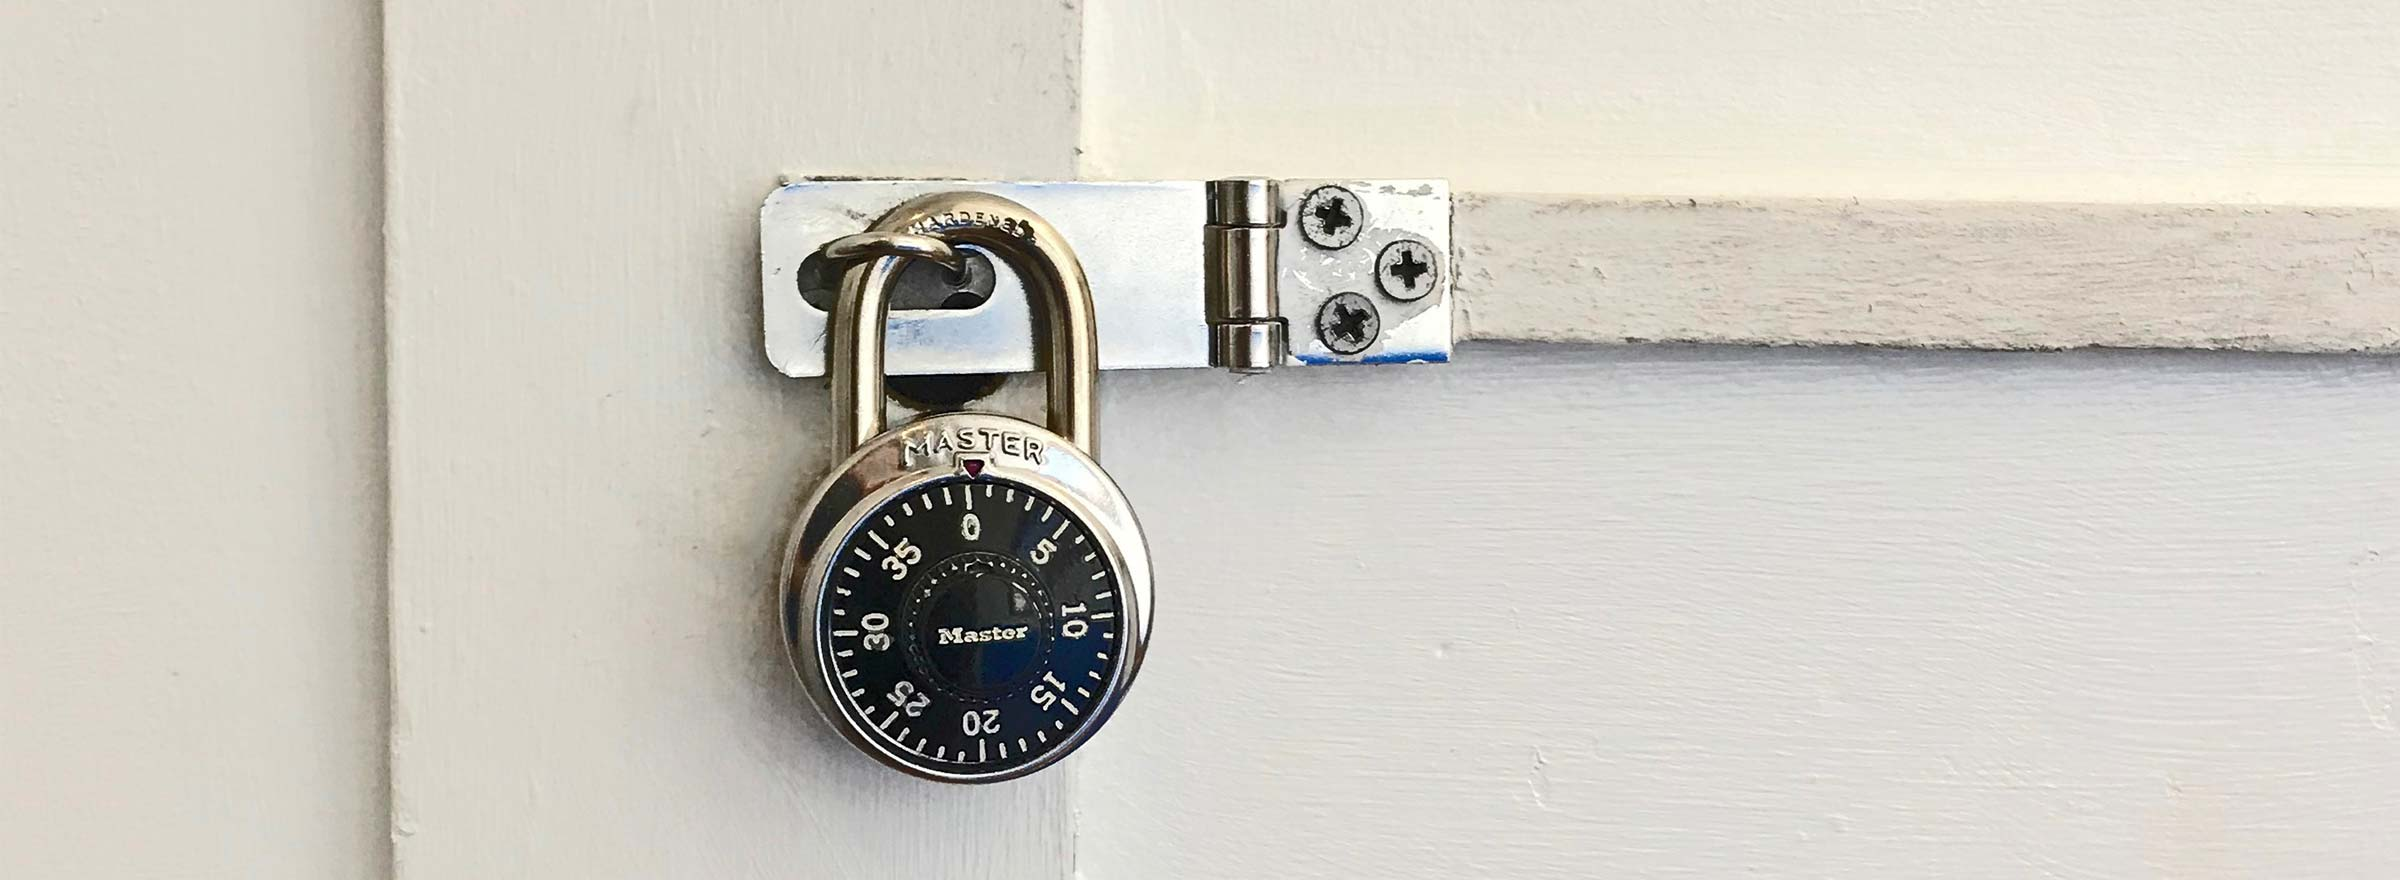 a combination lock securing a door, representing the need for cybersecurity for nonprofits